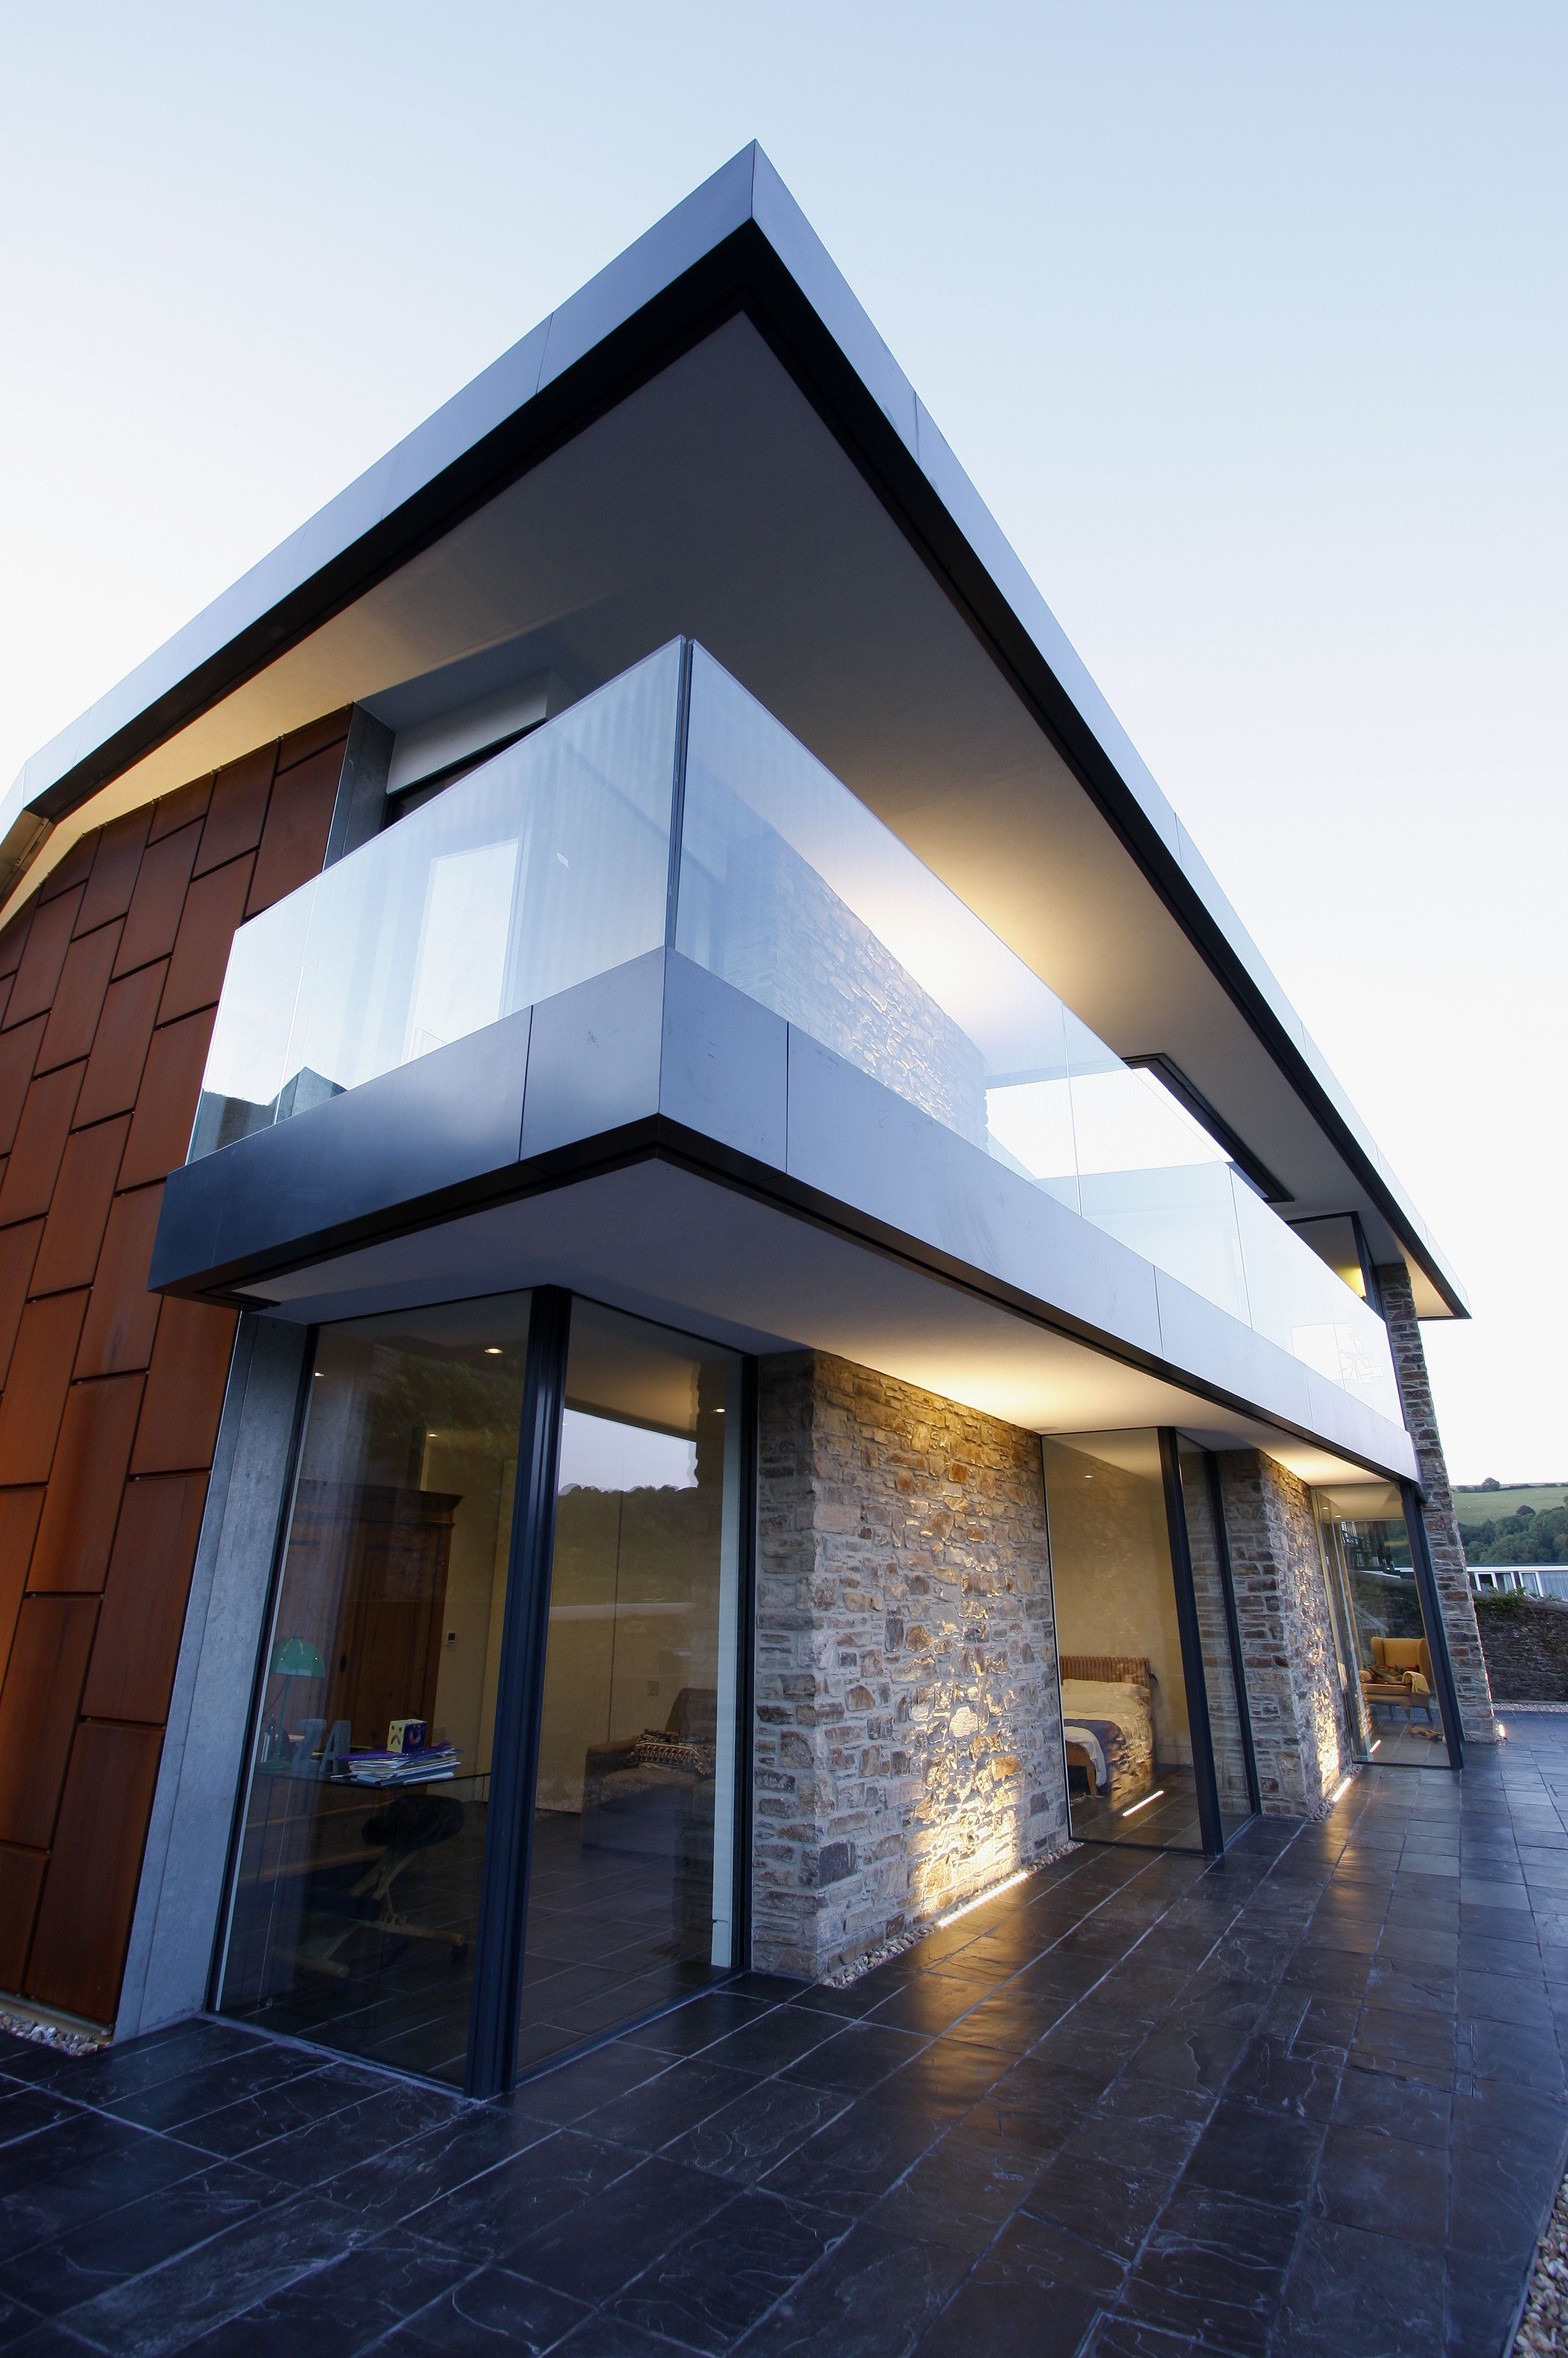 Transom Windows A Useful Design Element: Sliding Minimal Windows And Fixed Structural Elements